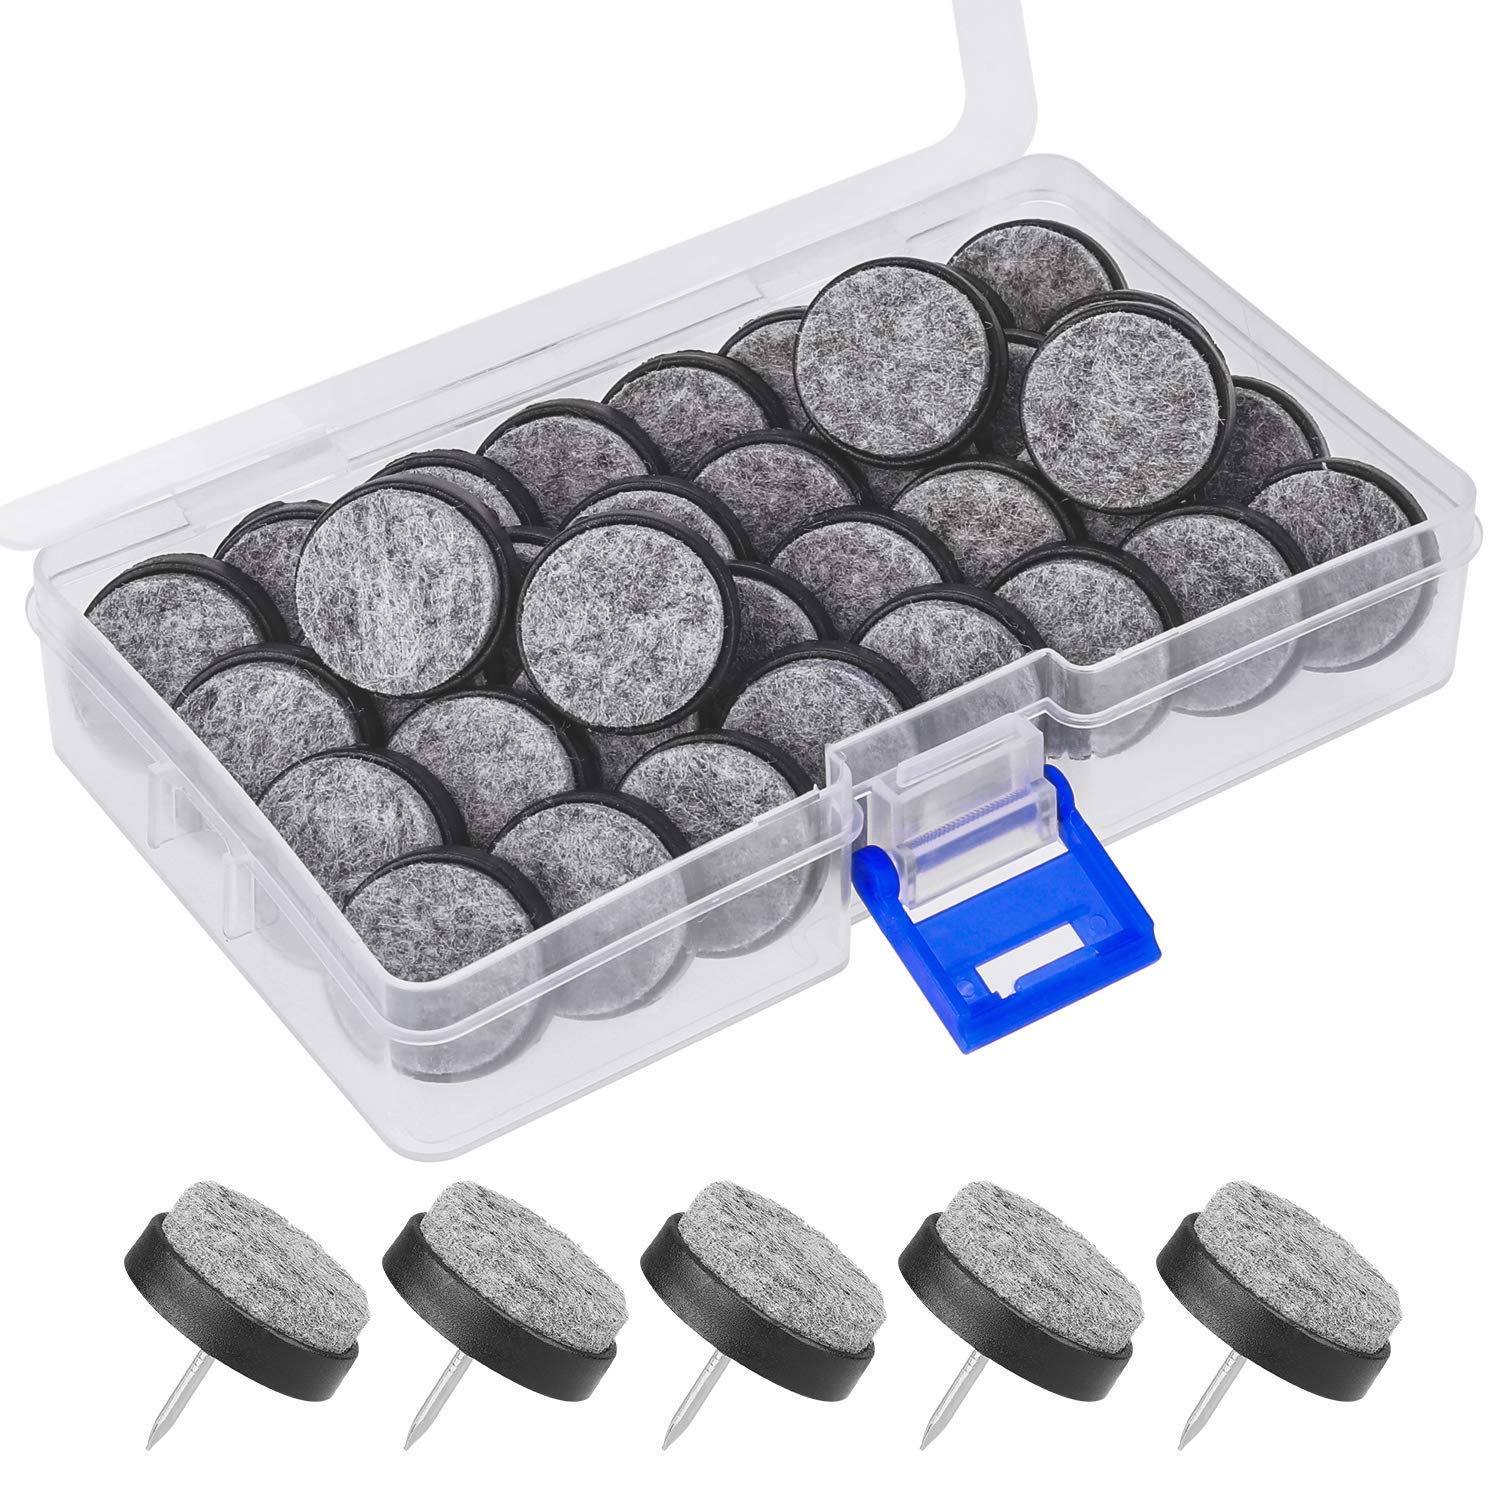 Stools and Table Leg 24 mm Black Furniture Feet Protection Pads for Wooden Chair Mwoot 36 Pieces Furniture Nails